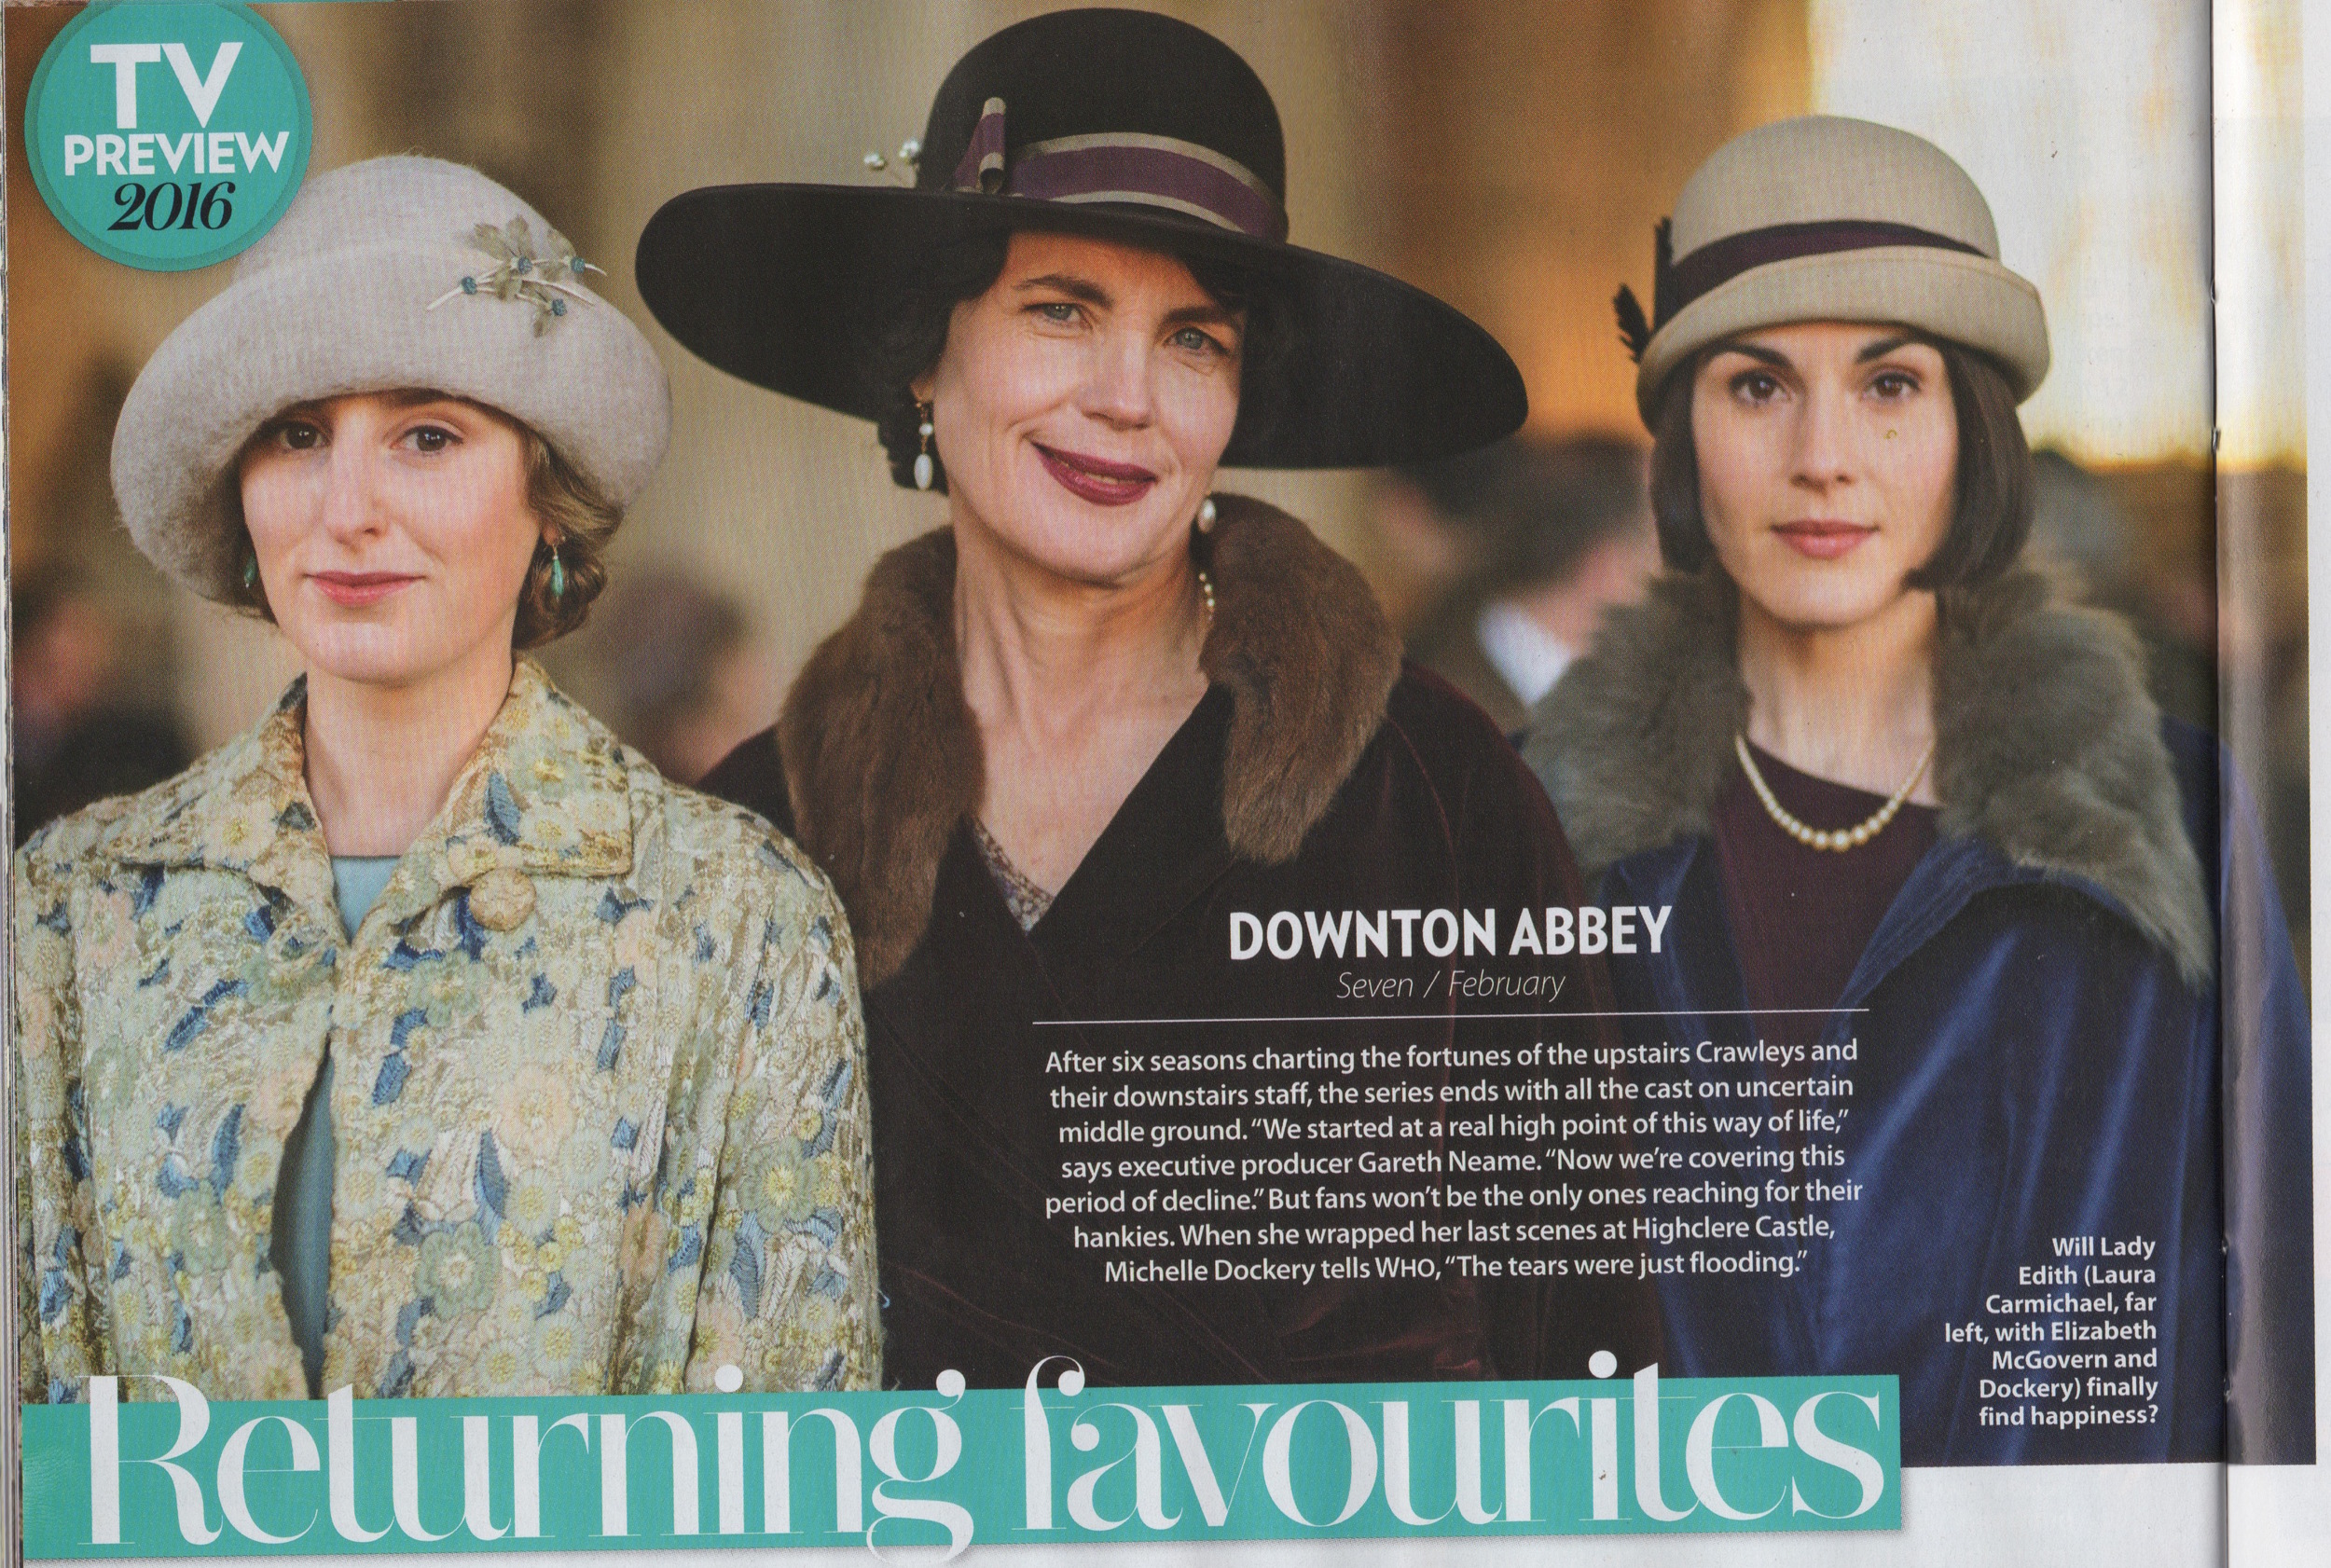 TVPreview16.Downton.jpeg